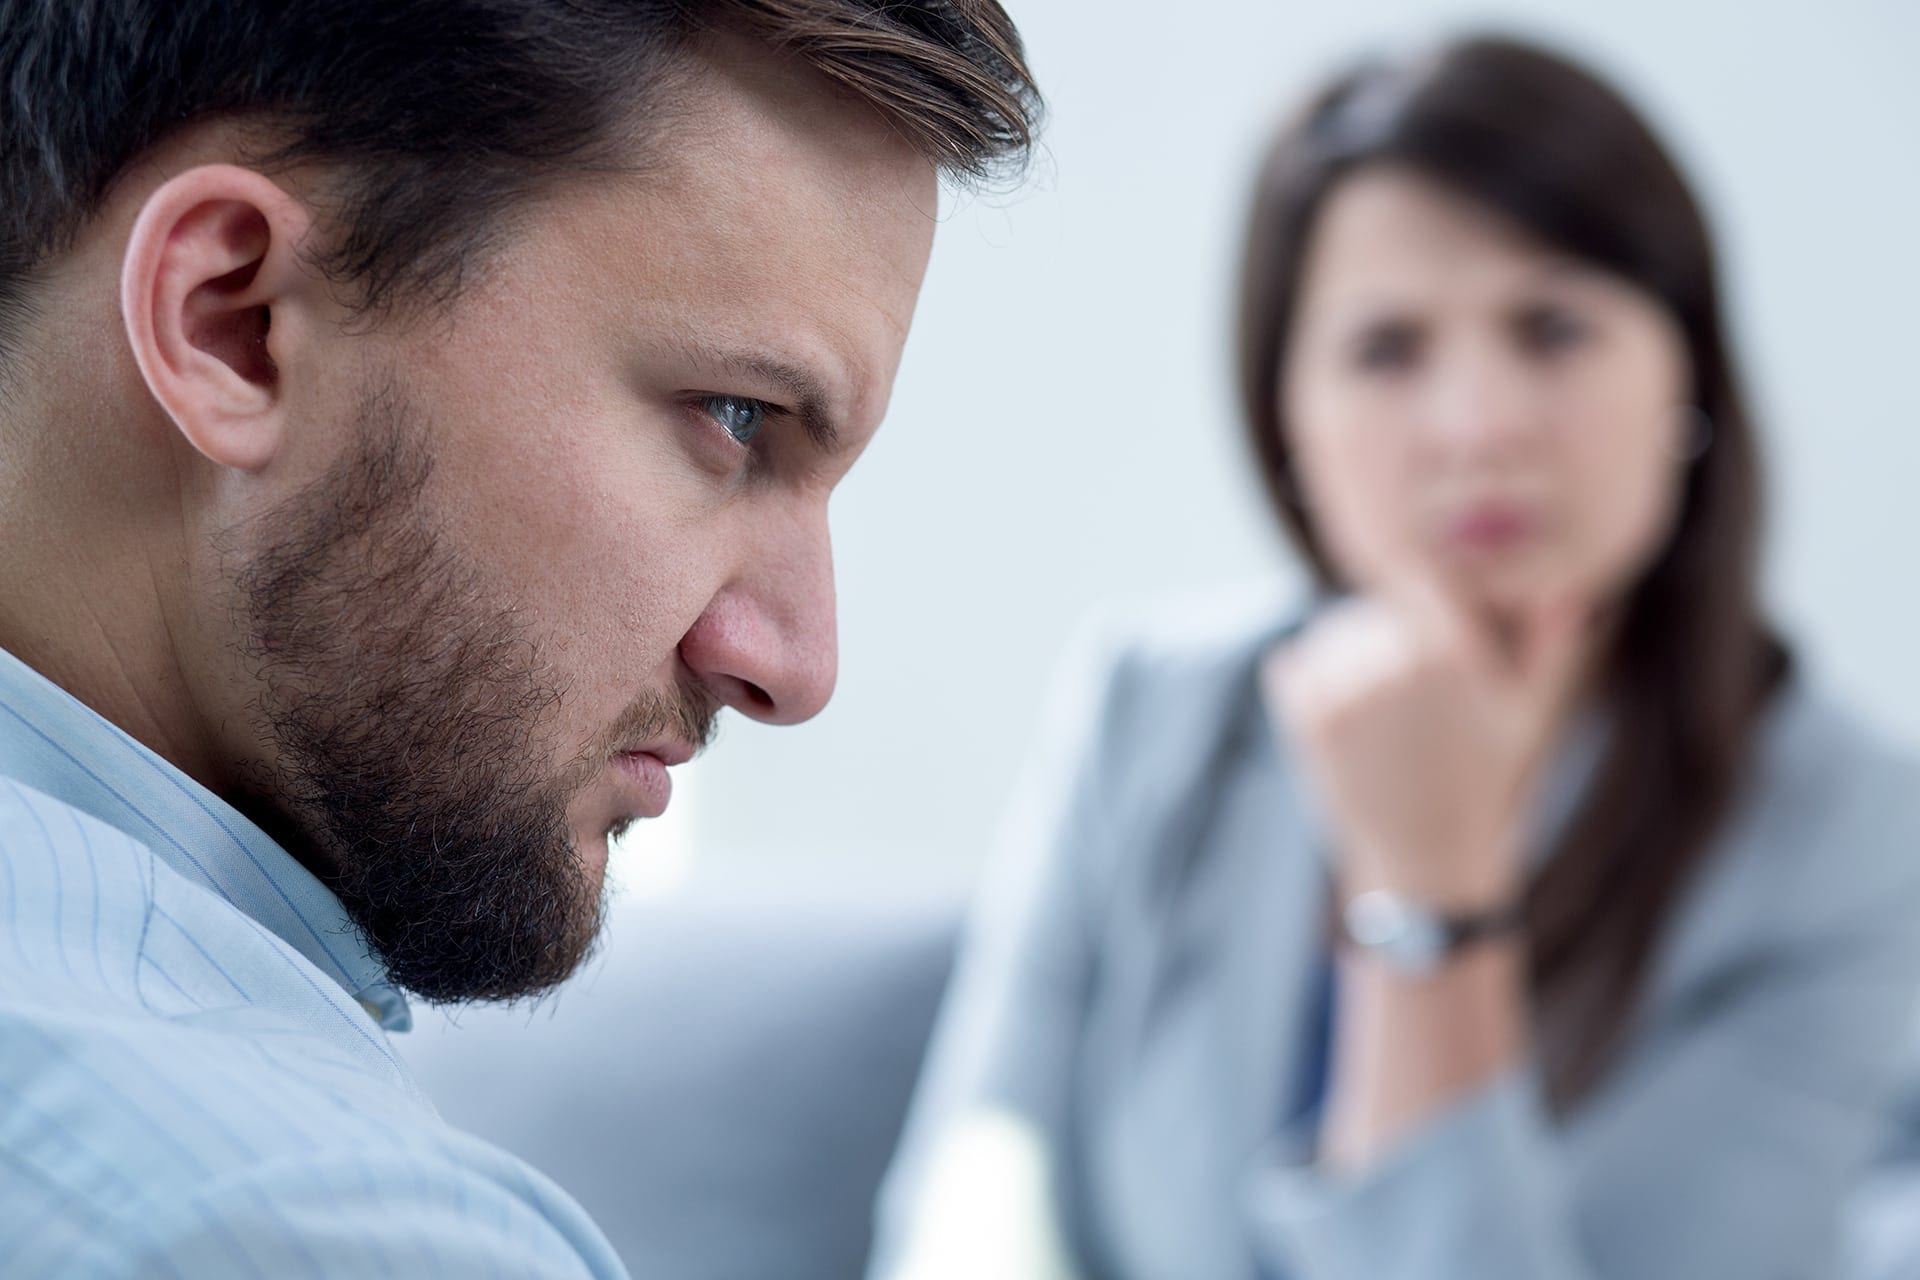 Man With Anger - Anger Management Counselling - Online Anger Management Courses